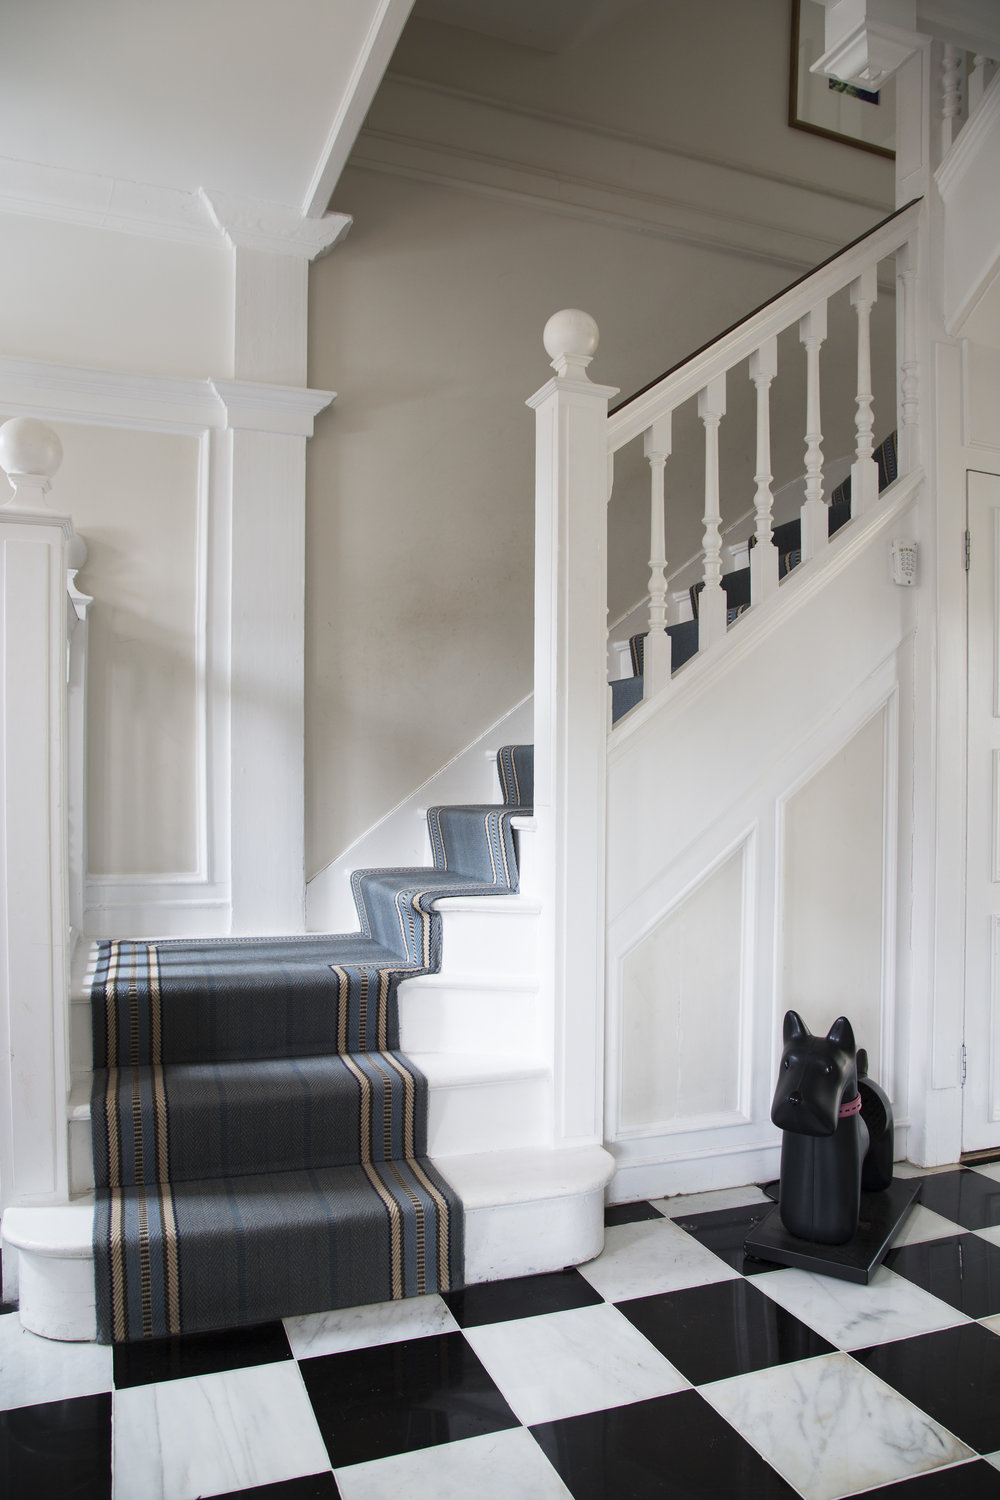 Black and white tiling and a blue stair runner in a classic contemporary home full of period features in Sevenoaks Kent - Interior Design by Phoebe Oldrey of Smartstyle Interiors